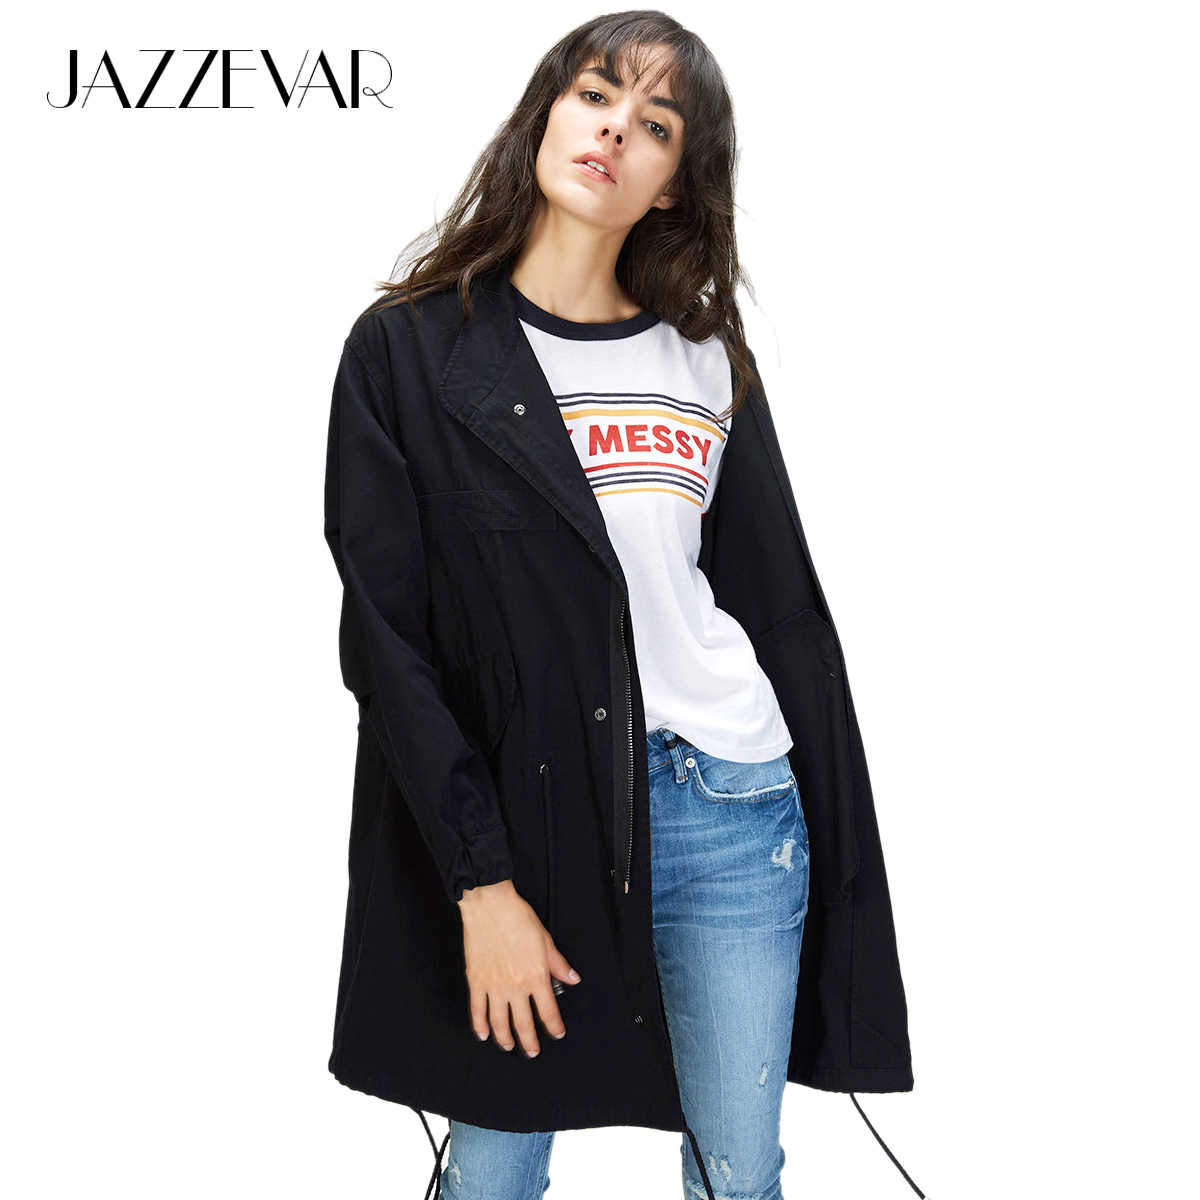 JAZZEVAR Autumn New Women's Casual Trench Army Green Md-Long version Outerwear Cotton Vintage Washed Loose Clothing